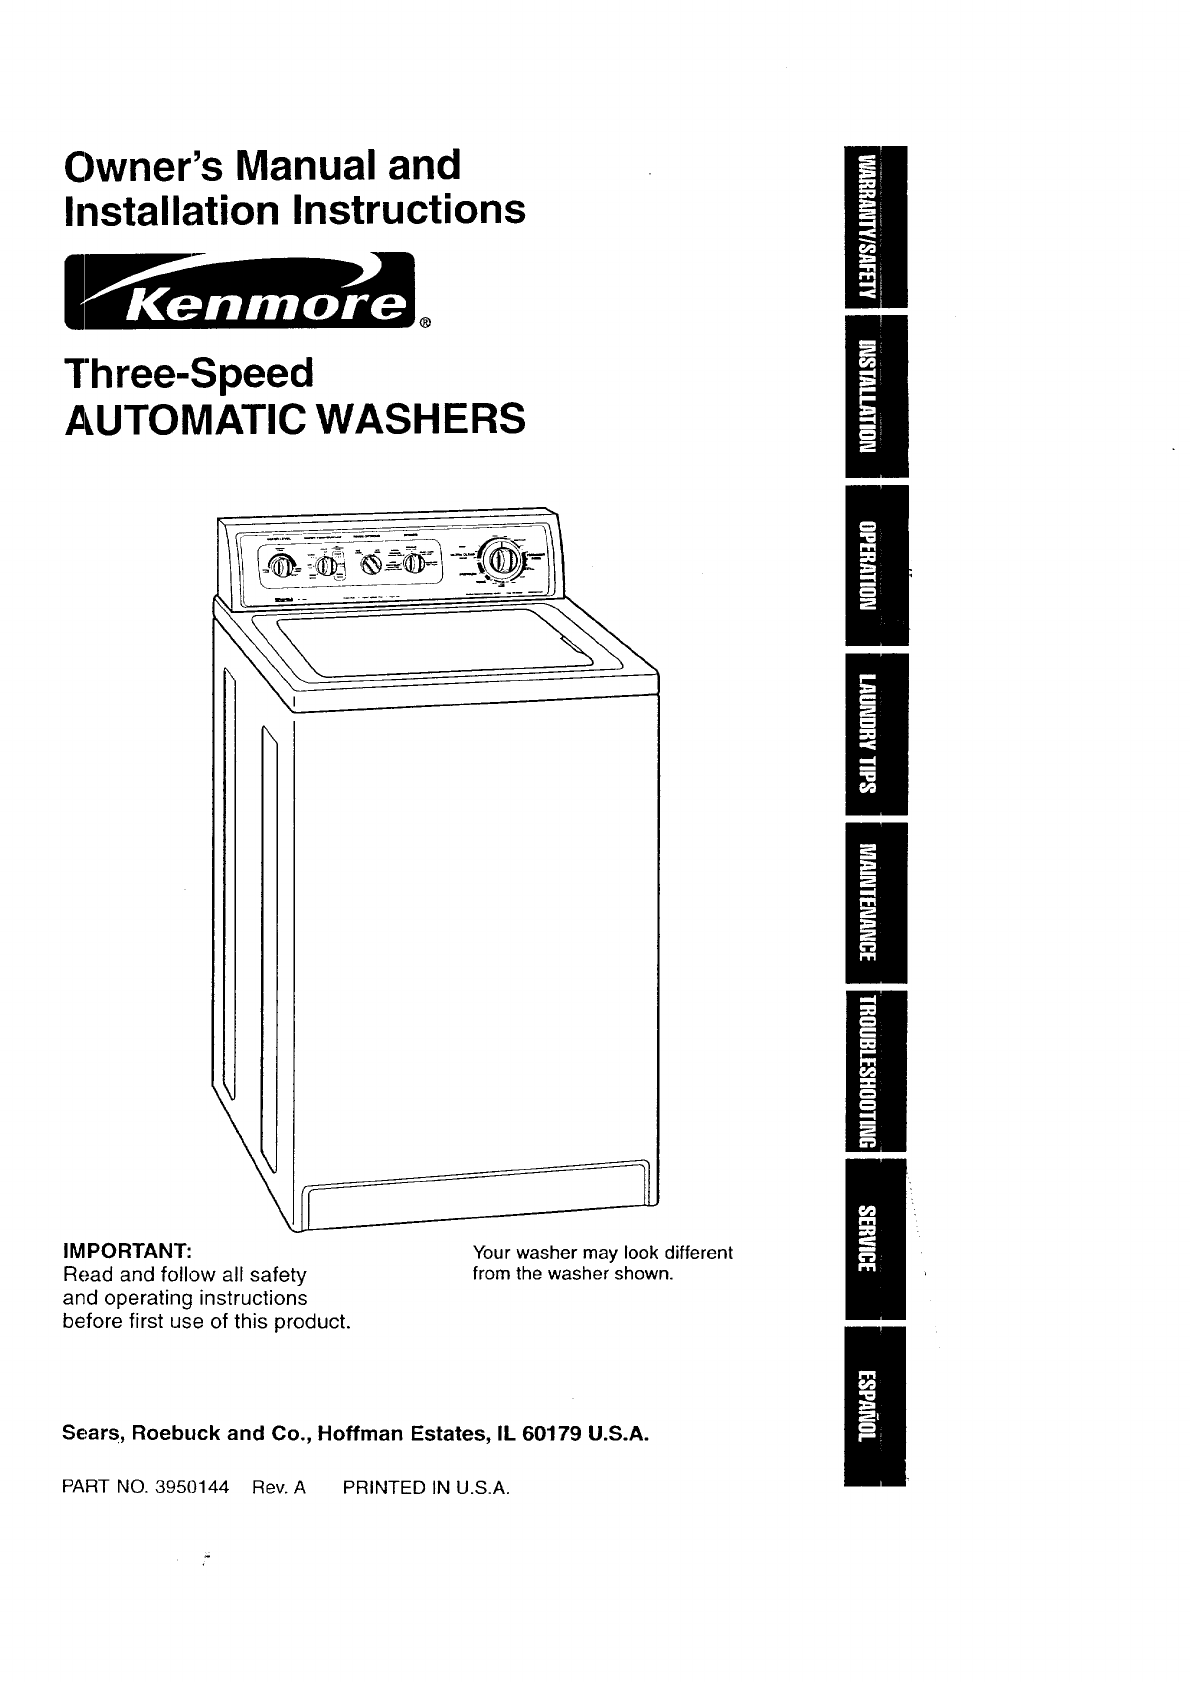 kenmore washer automatic washers user guide manualsonline com rh kitchen manualsonline com Health Meter Scale Manual Manual Meter- Reading